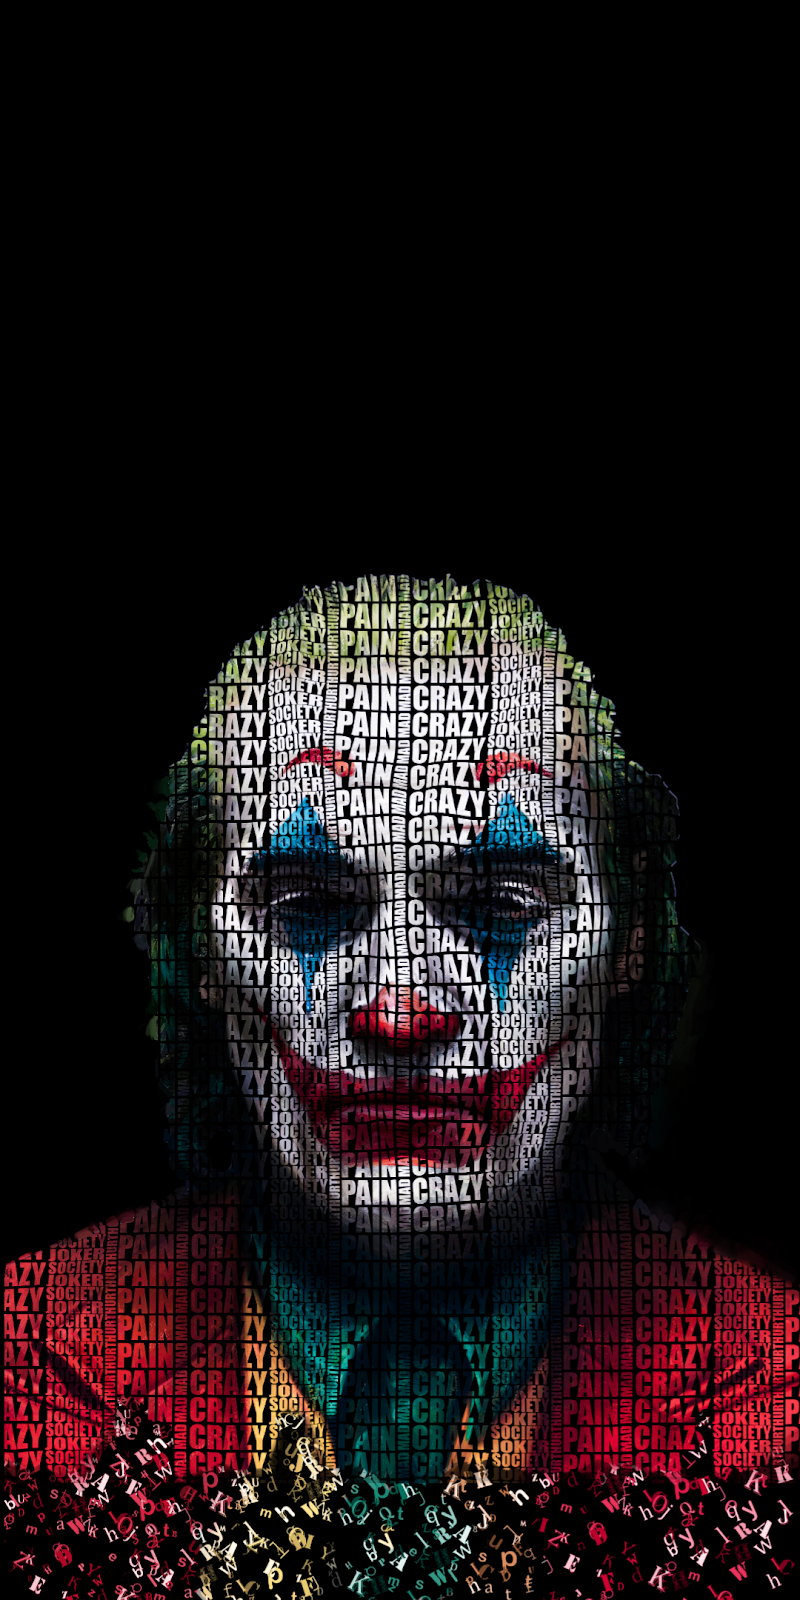 Hd Wallpapers For Iphone Latest Wallpapers 2020 Hd Hd Wallpaper Iphone Joker Wallpapers Iphone Wallpaper Lights